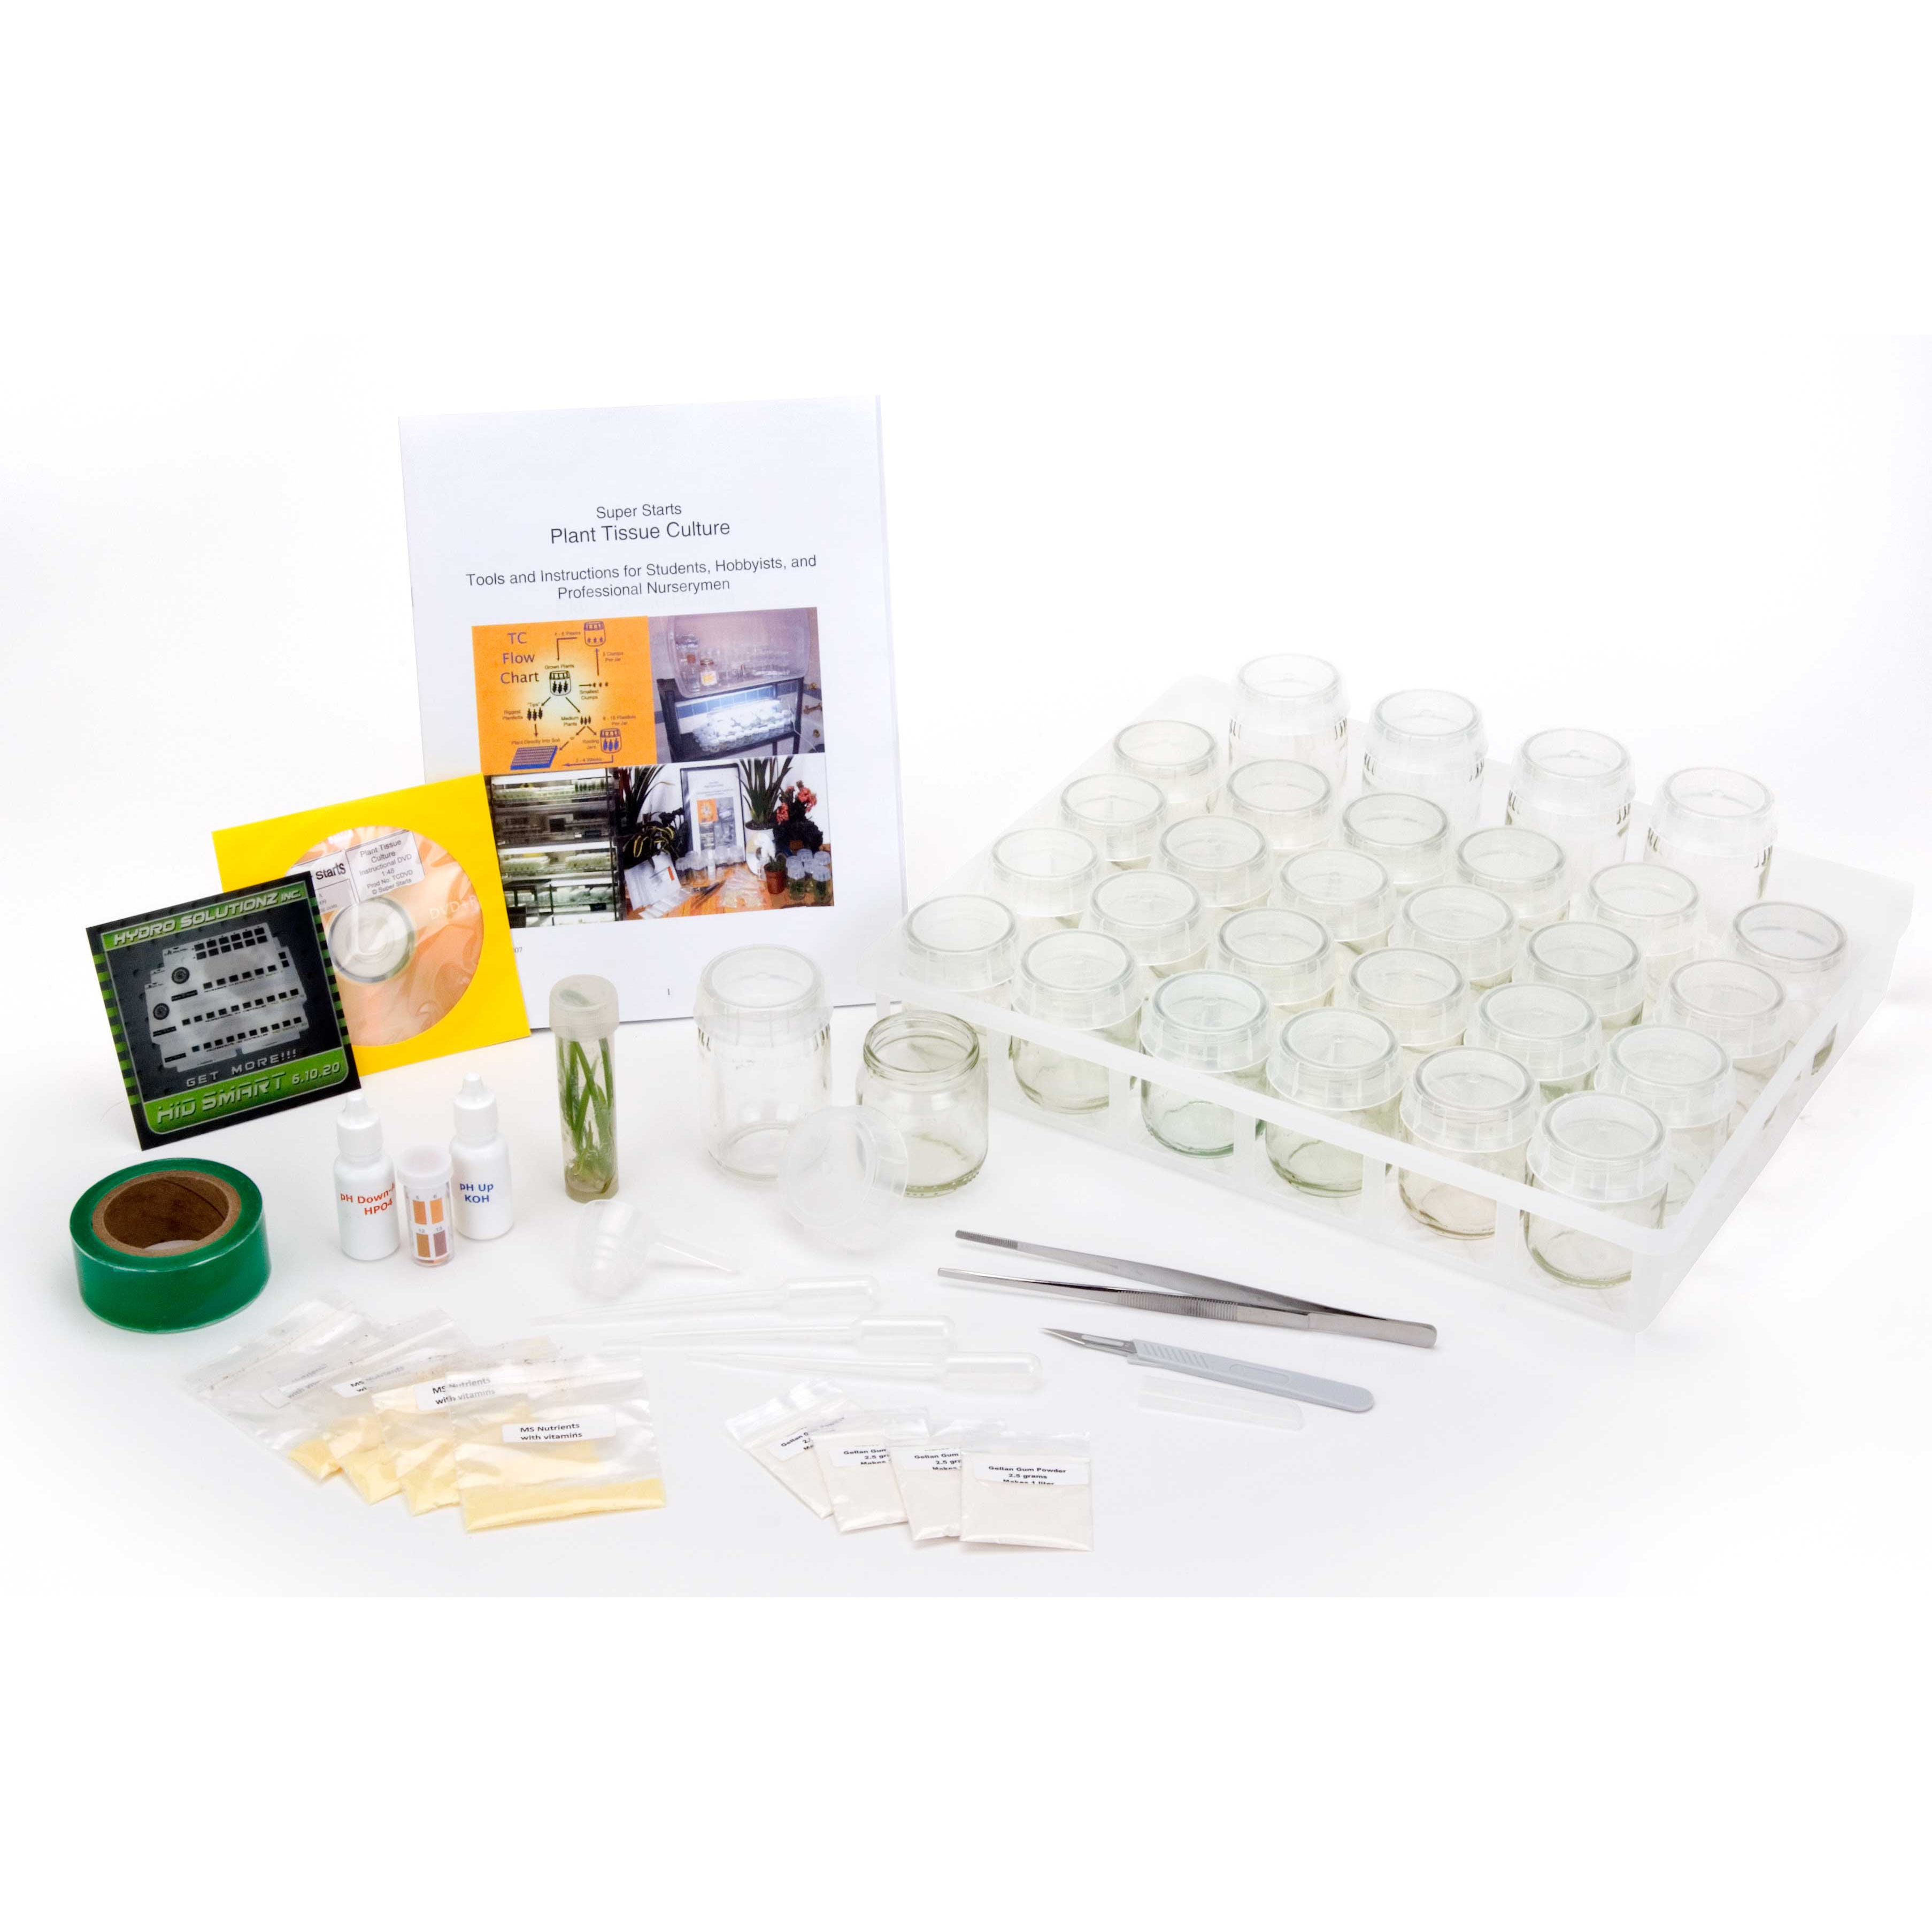 MicroClone - SuperStarts - Plant Tissue Culture Kit Tissue culture is the cloning method used by nurseries and biotech to produce the thousands of clones they make every day. Microclone and Pure Food have taken the best parts of the commercial tissue culture and put them together into the home tissue culture kits. Now home users, hobbyists, and small commercial gardeners can produce their own plants in whatever numbers they need. The benefits of tissue culture: Save time Save space Save power Save money Replaces large mother plants No bugs, no mold, no maintenance Produces seedling quality plants from clones Easy and fun Unlock hidden genetics Ship and transport your favorite plants Grow dozens of bonsai mother  jars  on a media of sugar, agar, nutrients and hormone from small meristem pieces in small self-contained vessels. One liter of media produces 200 clones per month and the kits contain four liters to start. The plants are cleaned before going into the tissue culture tubes and the jars are prepared by cooking in a stove pressure cooker. TC plants need only 10 watt/sf light so two T5 lamps on a shelf grow 4 trays or 200 containers. The Super Starts micropropagation kit contains the tools, ingredients, manual and DVD to successfully do plant tissue culture at home. Kit includes: 50 6oz flip-top vials 30 clear plastic jar lids 16 starter poly test tubes with screw lids in tray 5ml PPM antifungal/antibacterial preservative 1 establish/multiplication media kit with BA hormone 1 rooting/growth media kits with NAA hormone 2 establish/multiplication TDZ media kits with TDZ hormone for branching and woody plants 1 stainless steel scalpel #3 and 2 #11 blades 8-inch stainless steel forceps PVC sealing tape pH control kit with test papers and correction solutions 50-page instructional manual with color photos and illustrations DVD instruction video Washing screen and ring for standard mouth jars